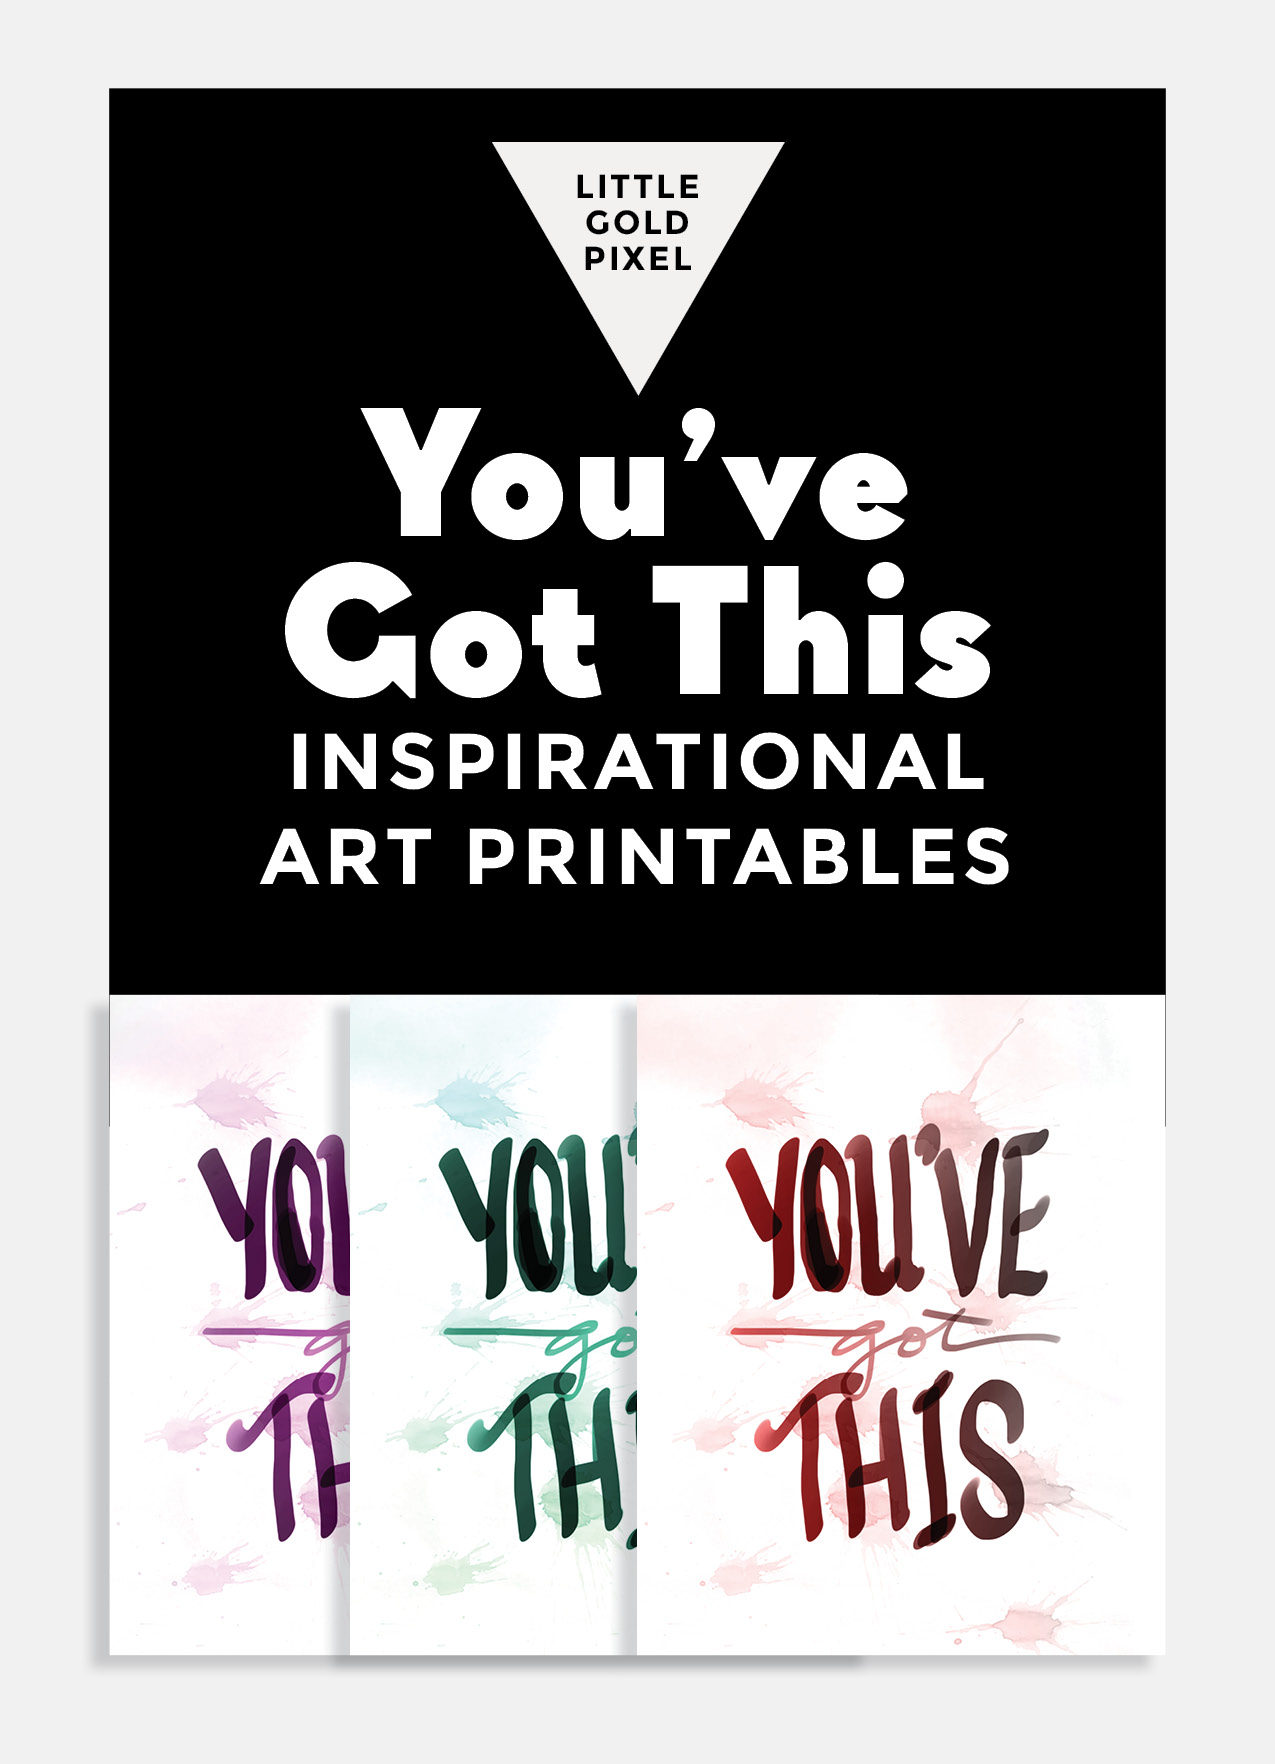 You Got This Inspirational Free Printable • Little Gold Pixel